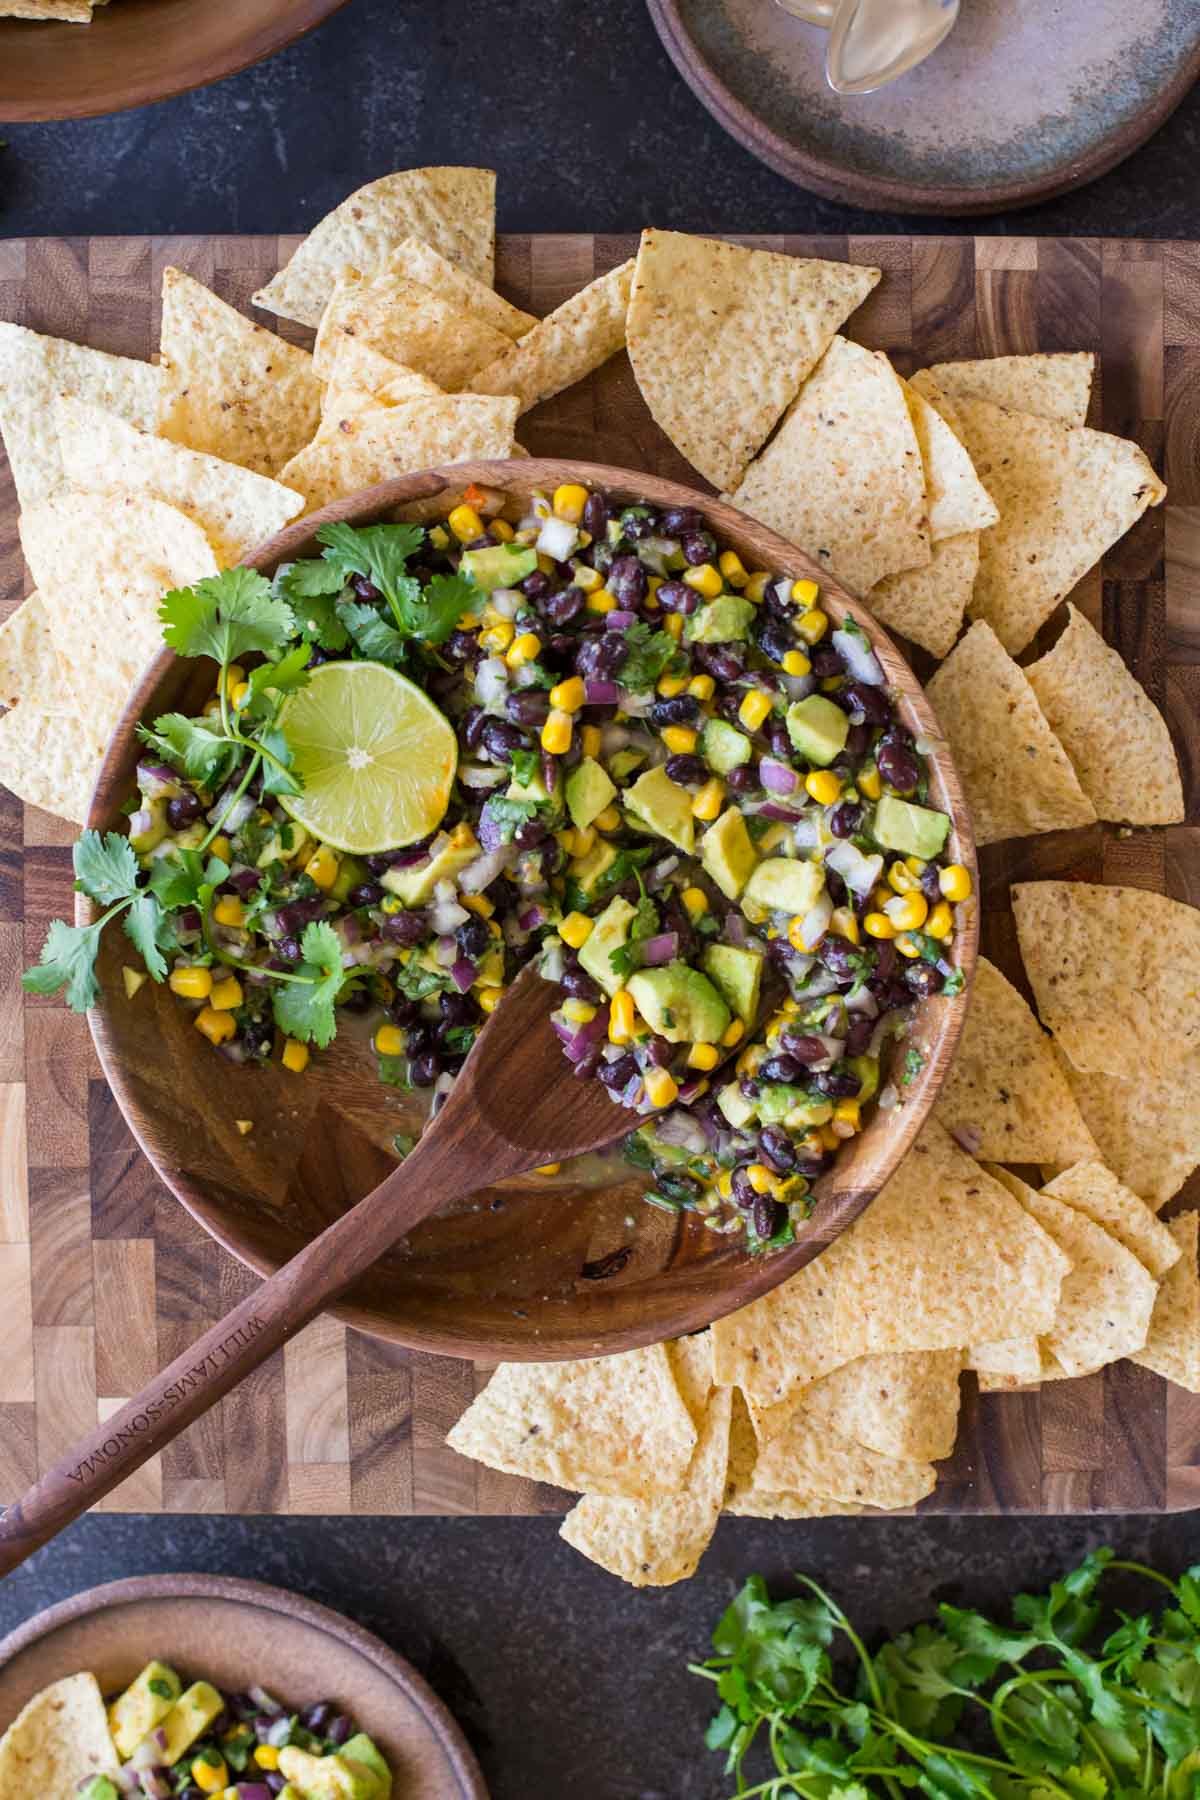 Quick and easy Avocado Dip in a bowl surrounded by tortilla chips.